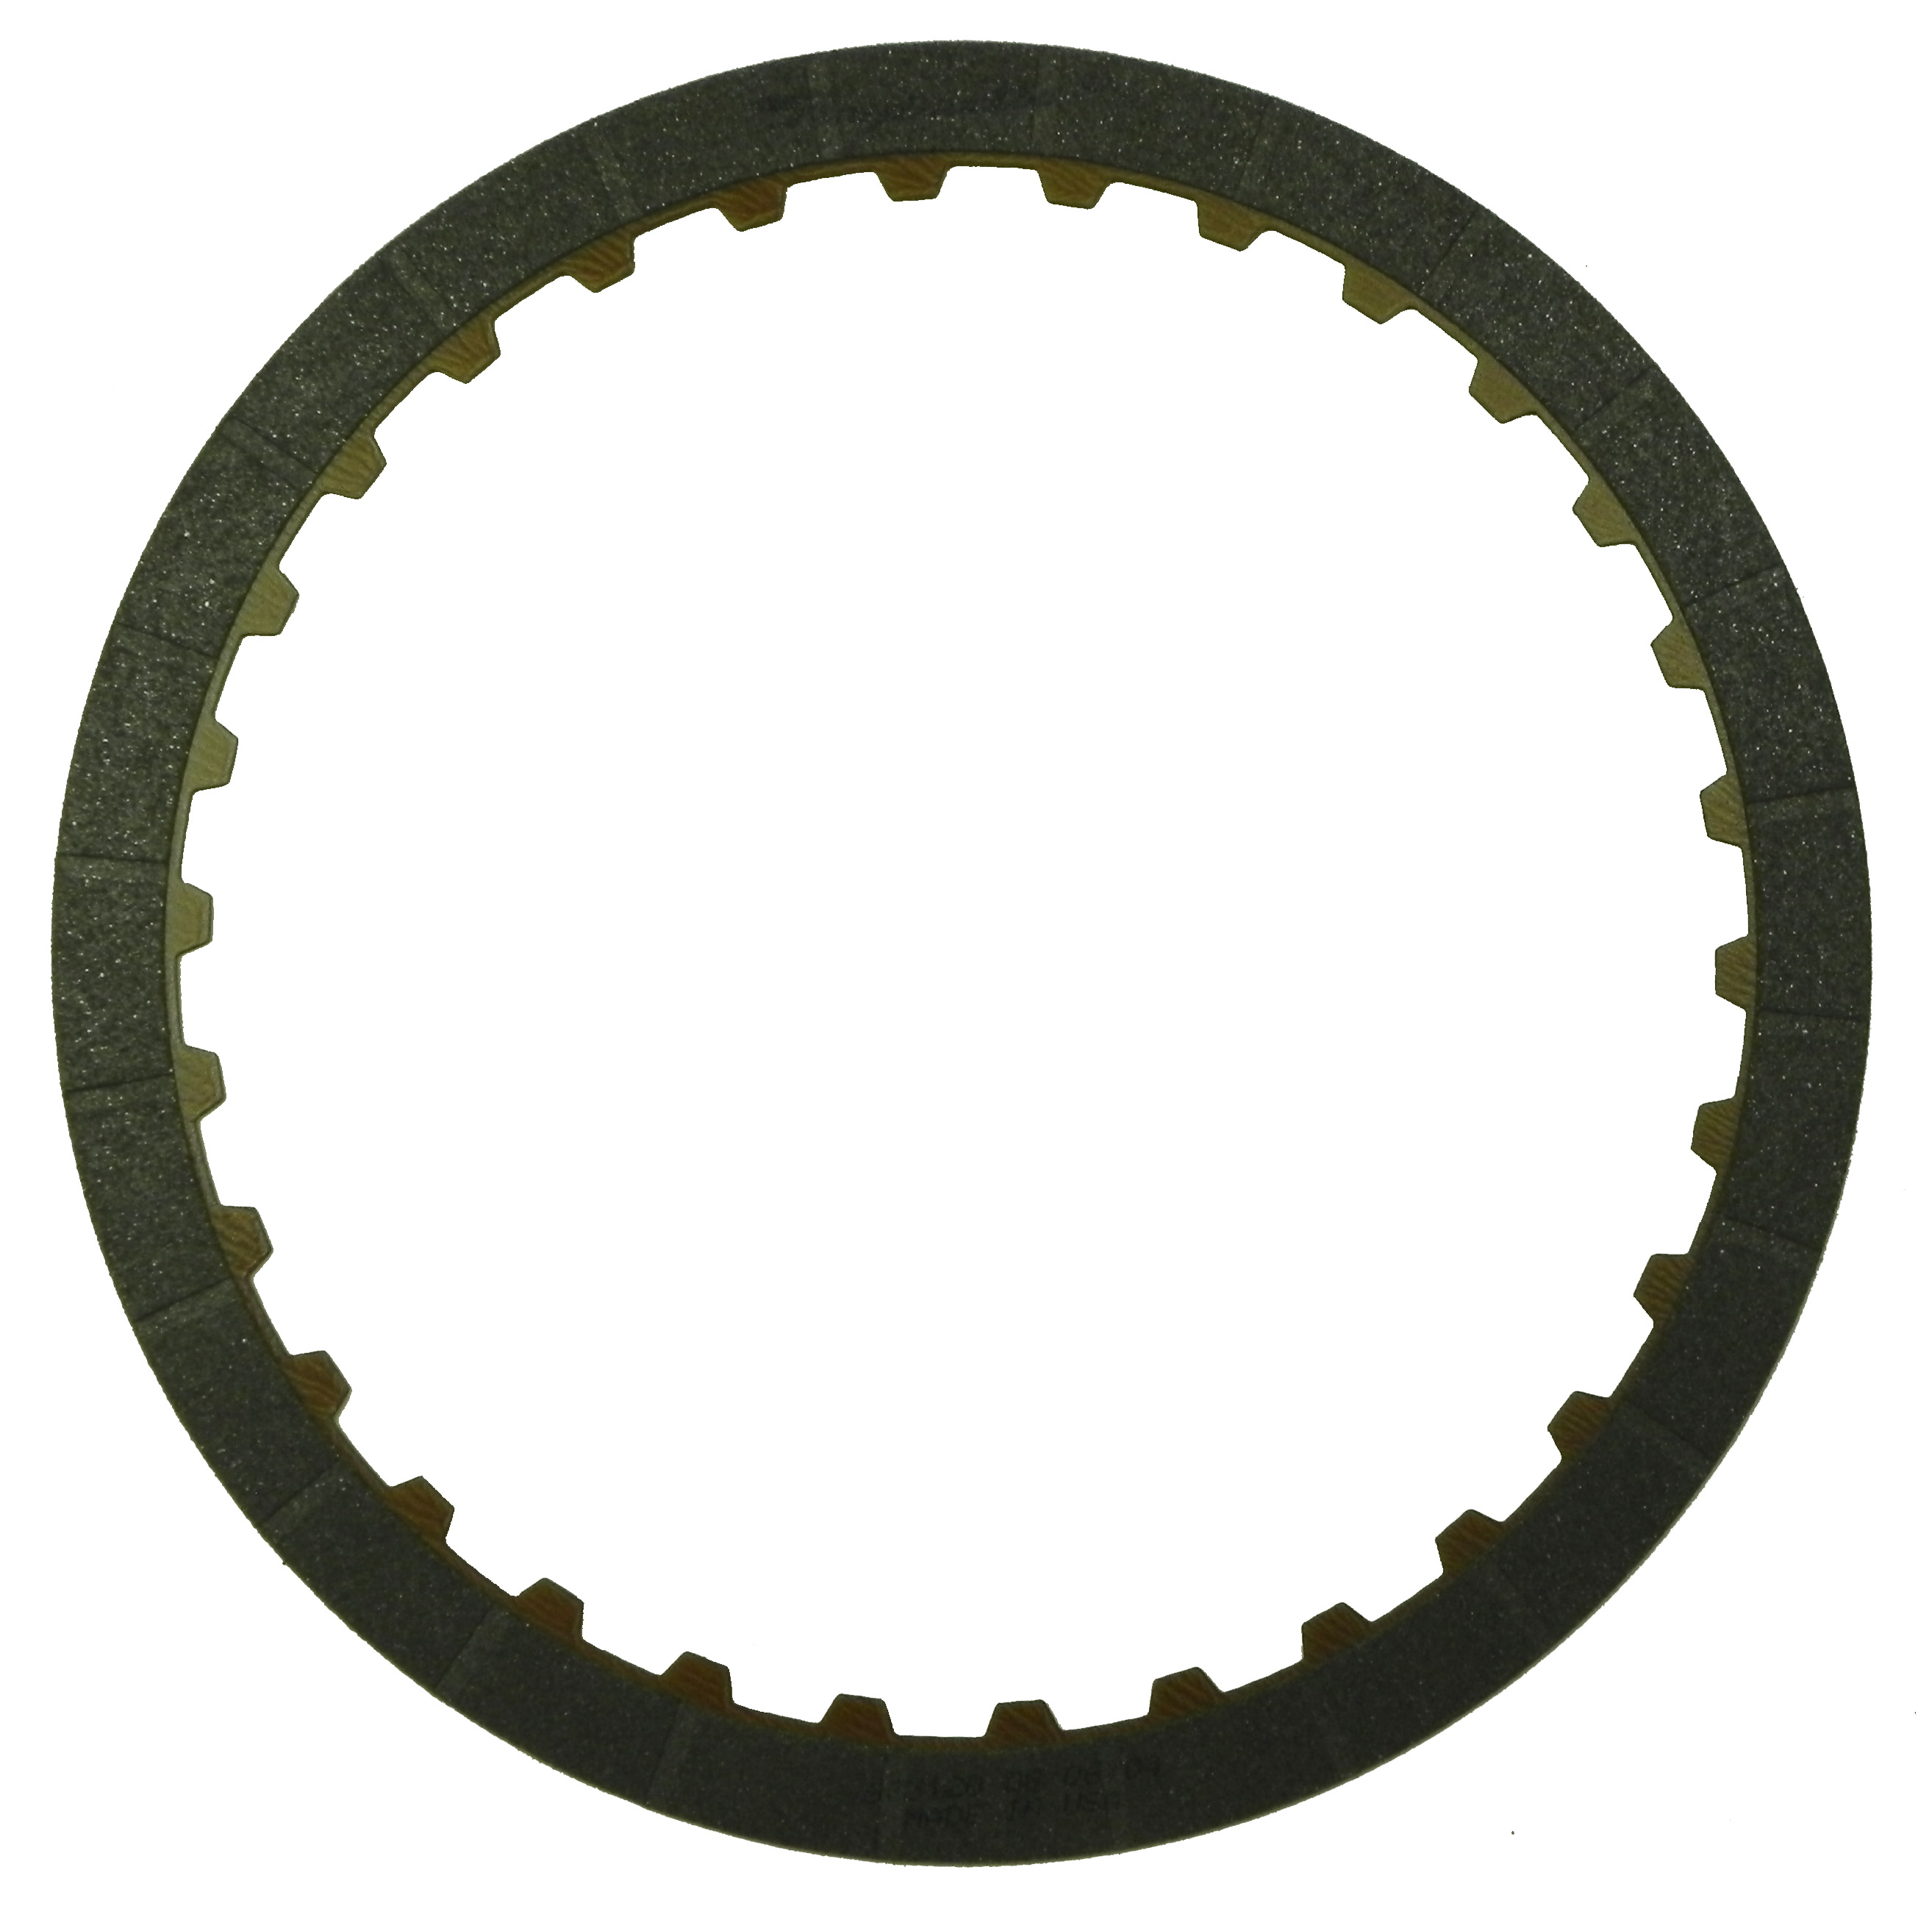 R573120 | 2002-2009 Friction Clutch Plate High Energy 2nd, 4th High Energy